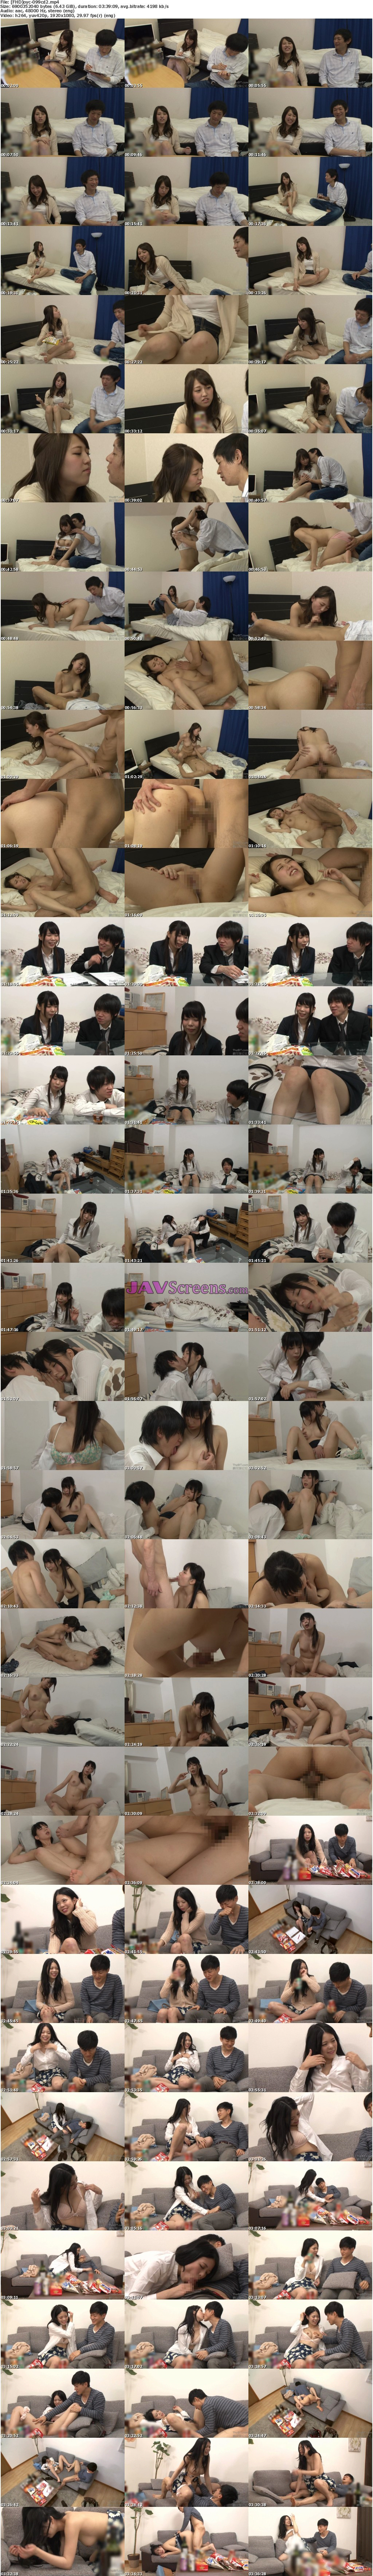 OYC-099B.jpg - JAV Screenshot